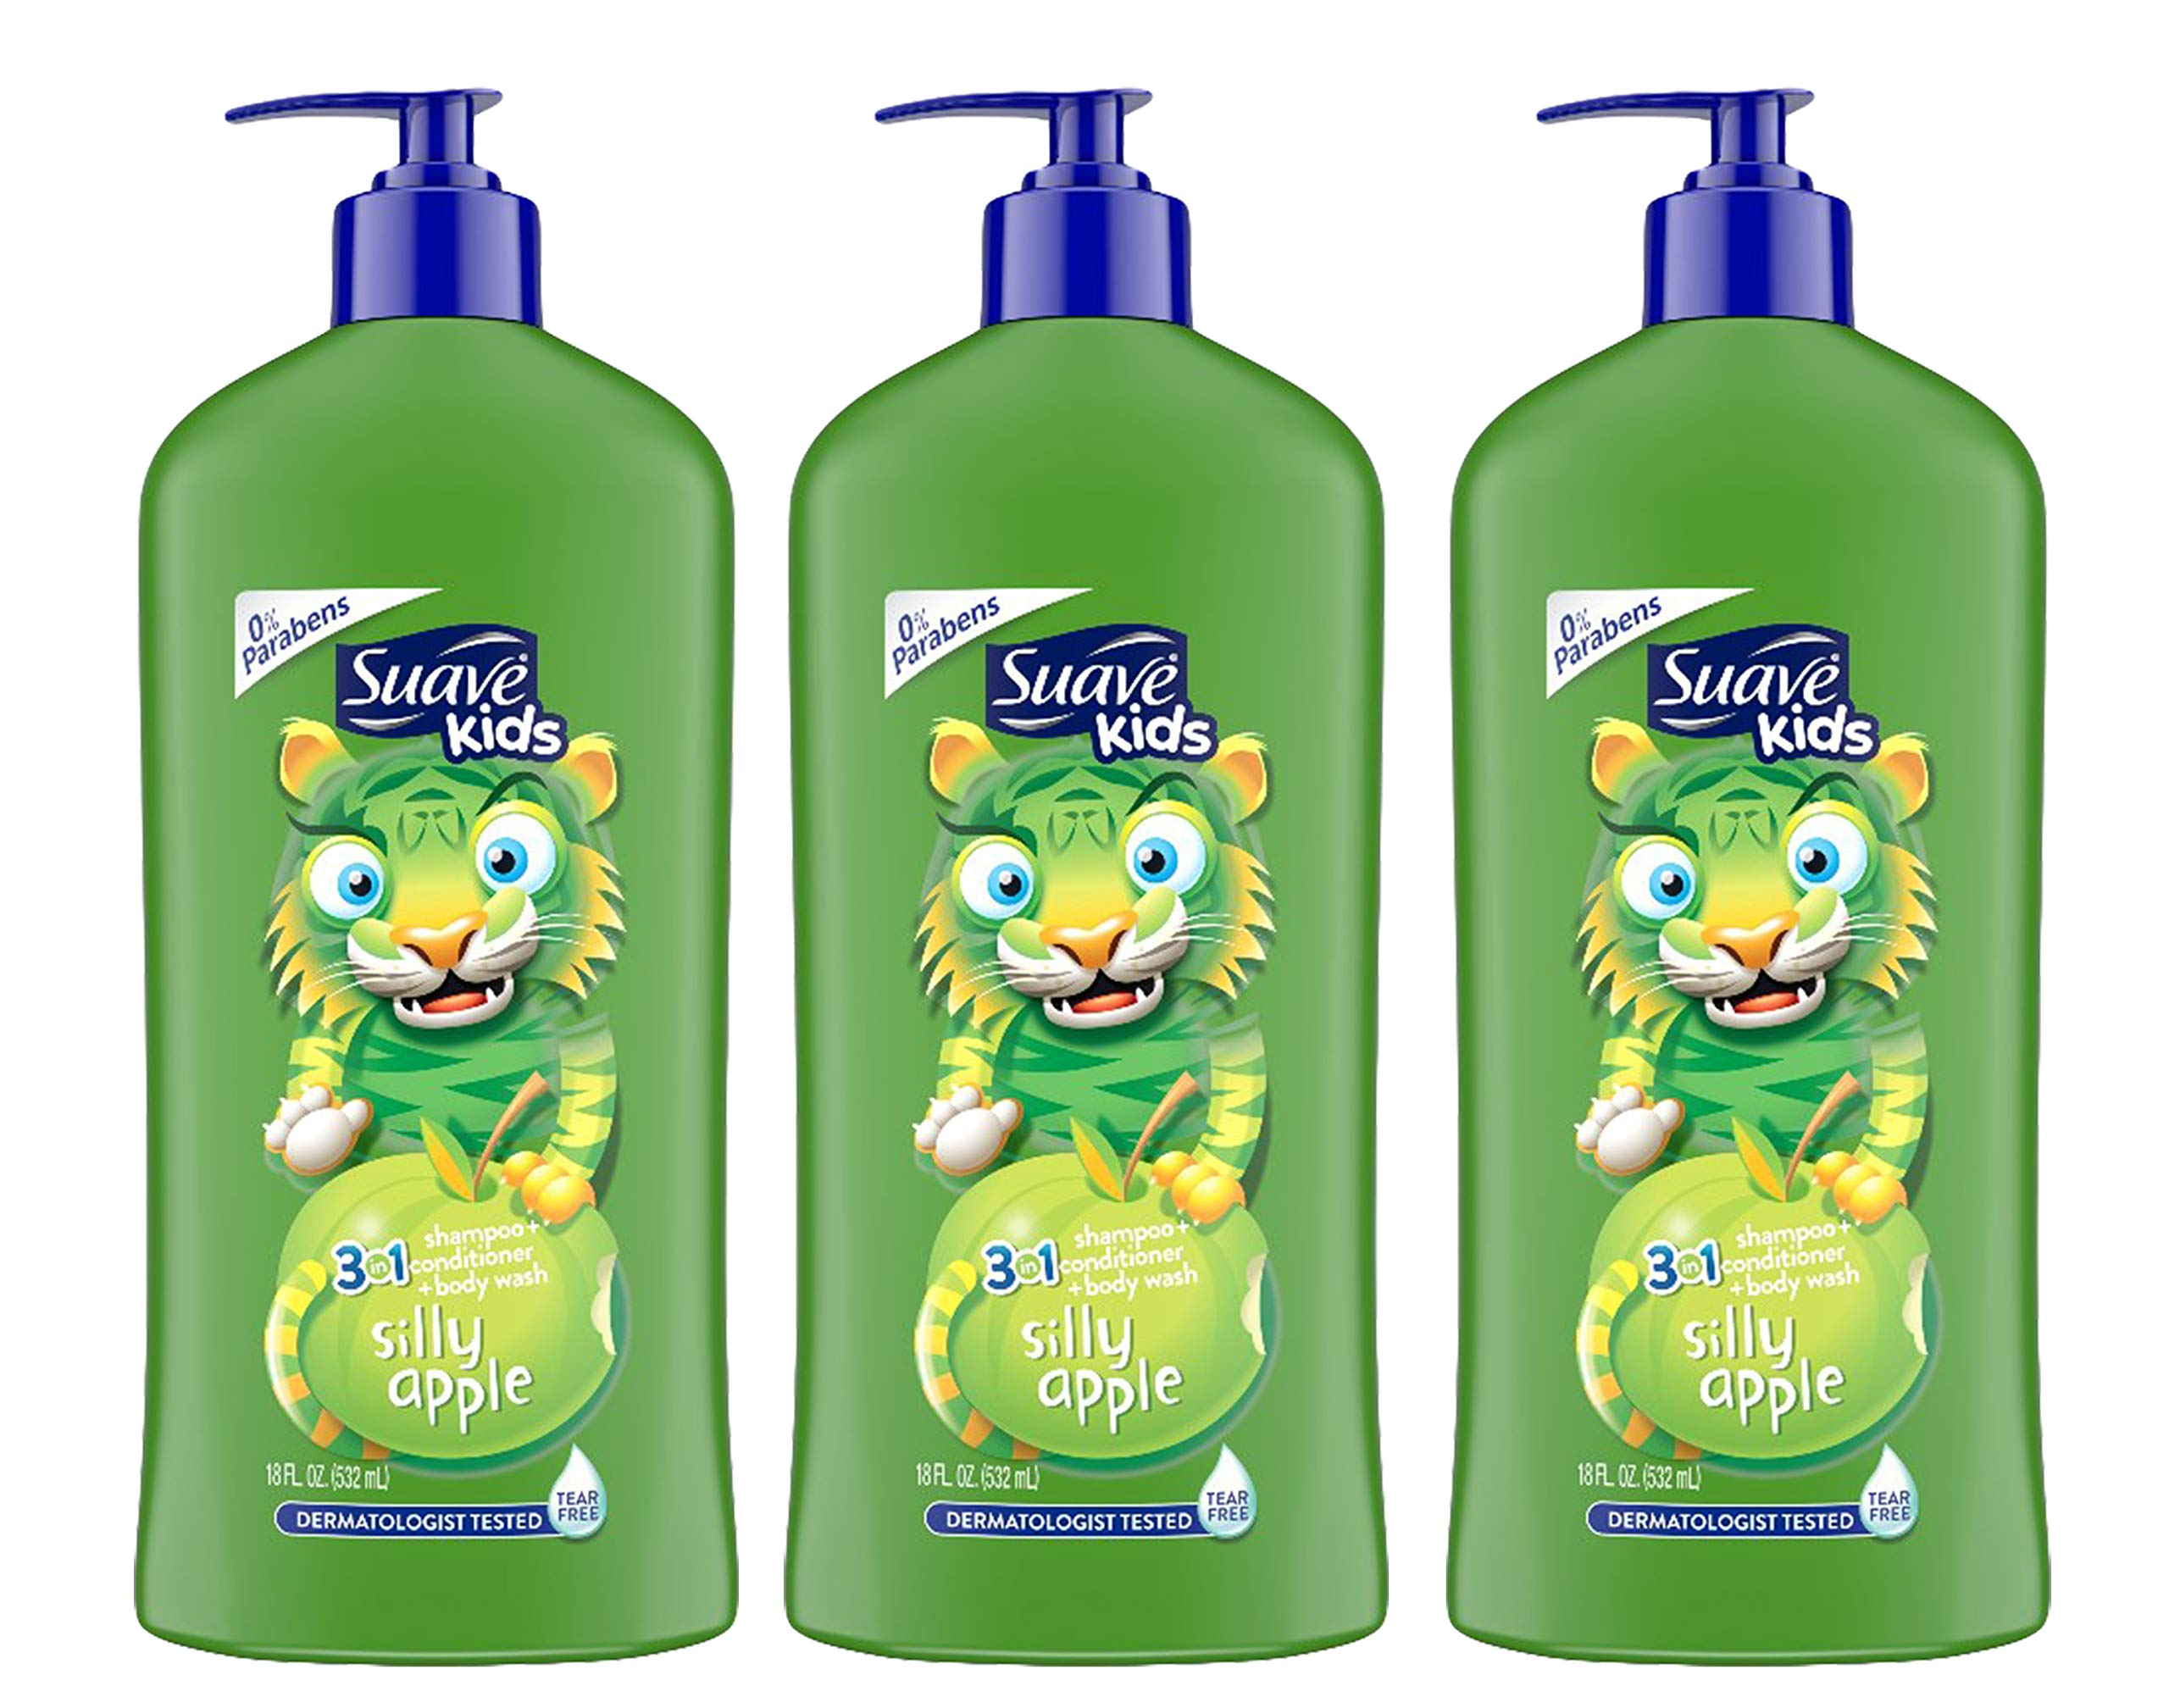 Suave Kids 3 in 1 Shampoo, conditioner + Body Wash, 18 Ounce (Pack of 3) by Suave